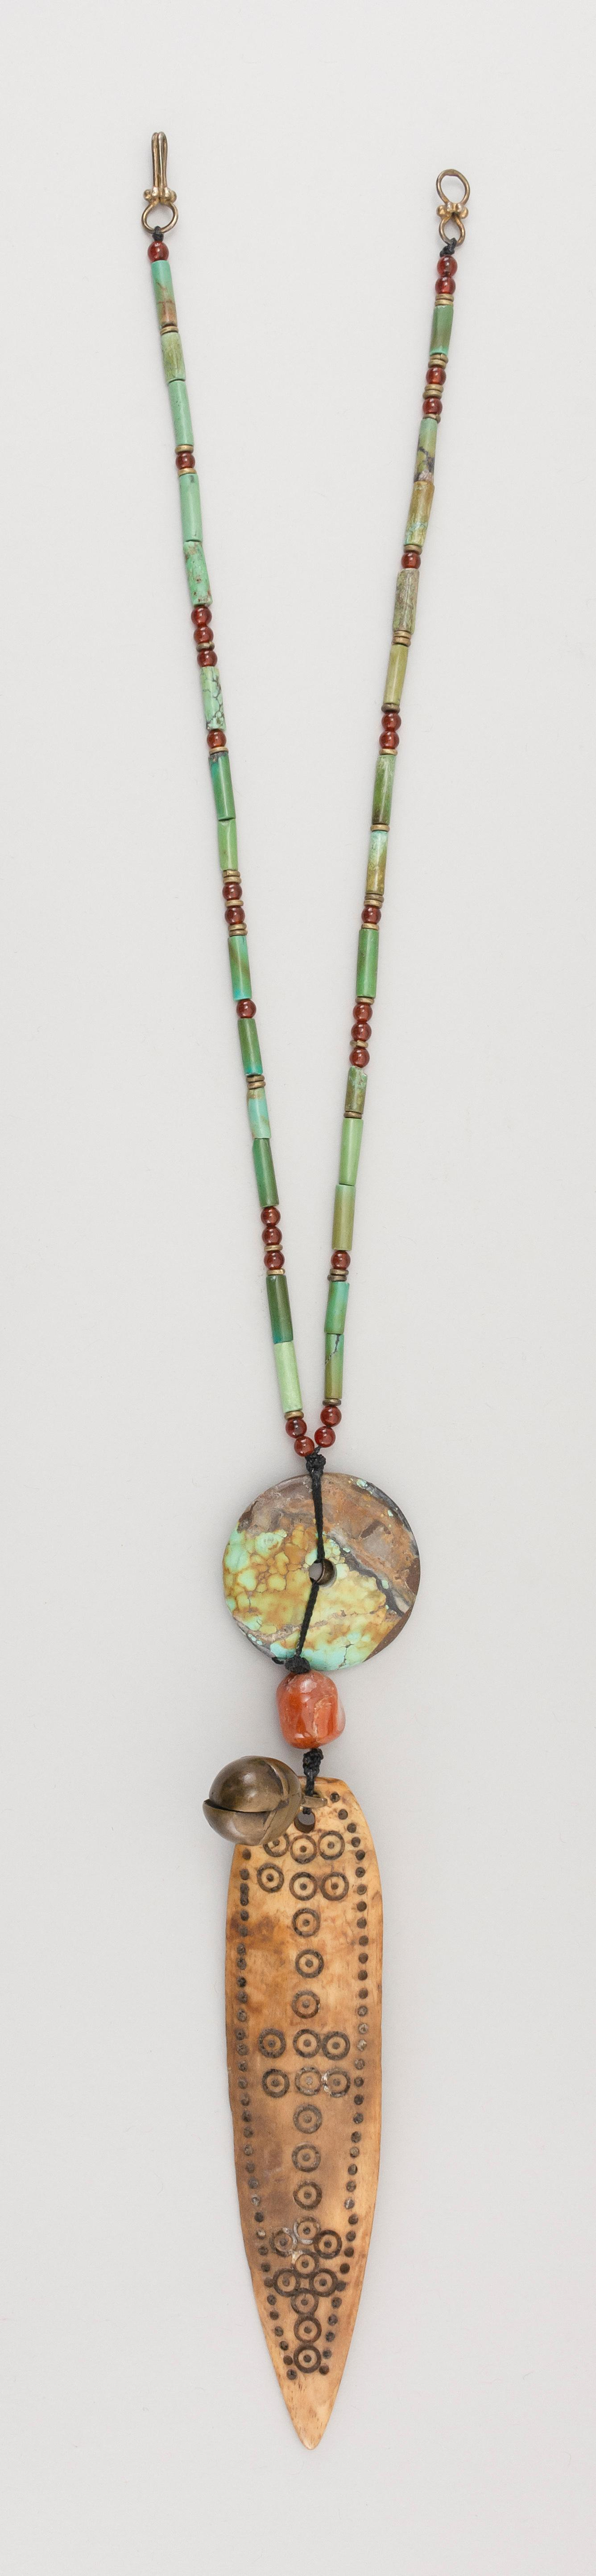 TURQUOISE AND CARNELIAN NECKLACE Unknown date and origin. Suspends a West African coin dated 1926, a turquoise disk and a carved bon...